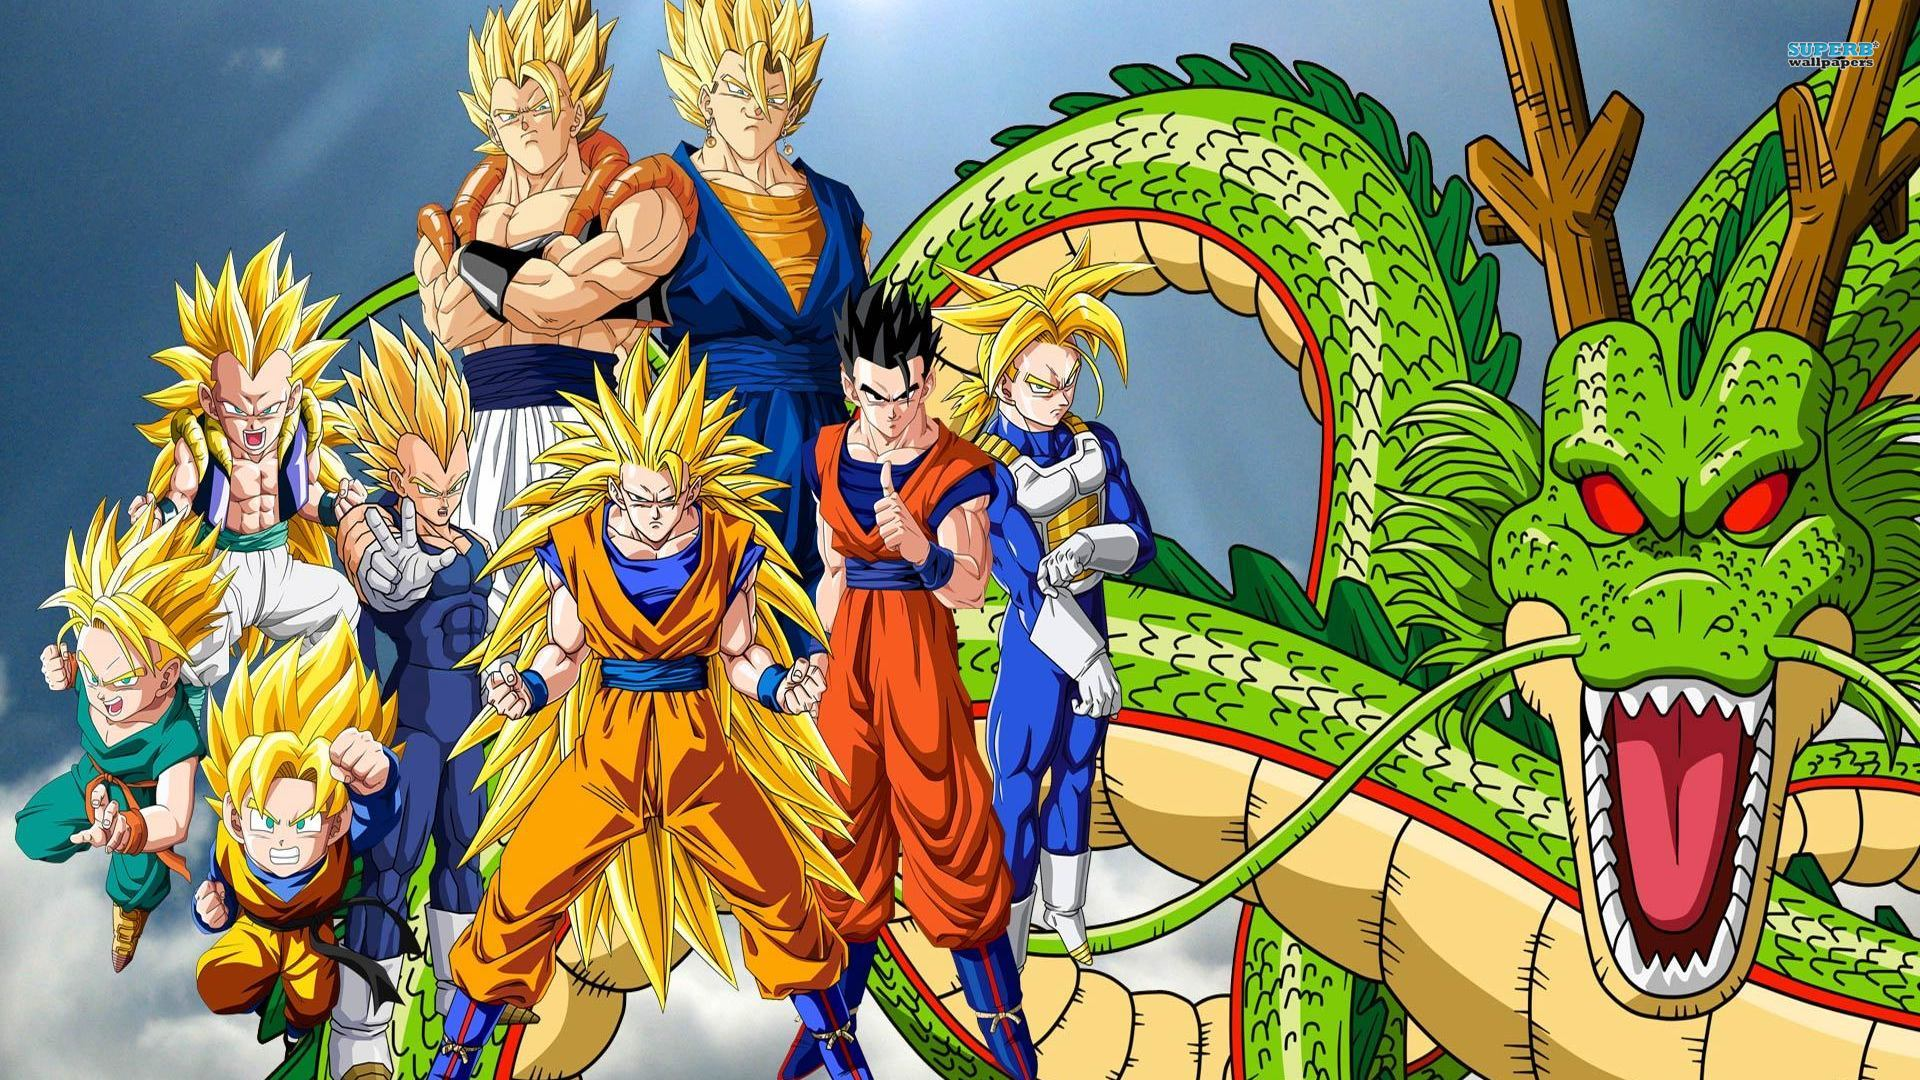 Dragon Ball Z Wallpaper 1920x1080 - WallpaperSafari